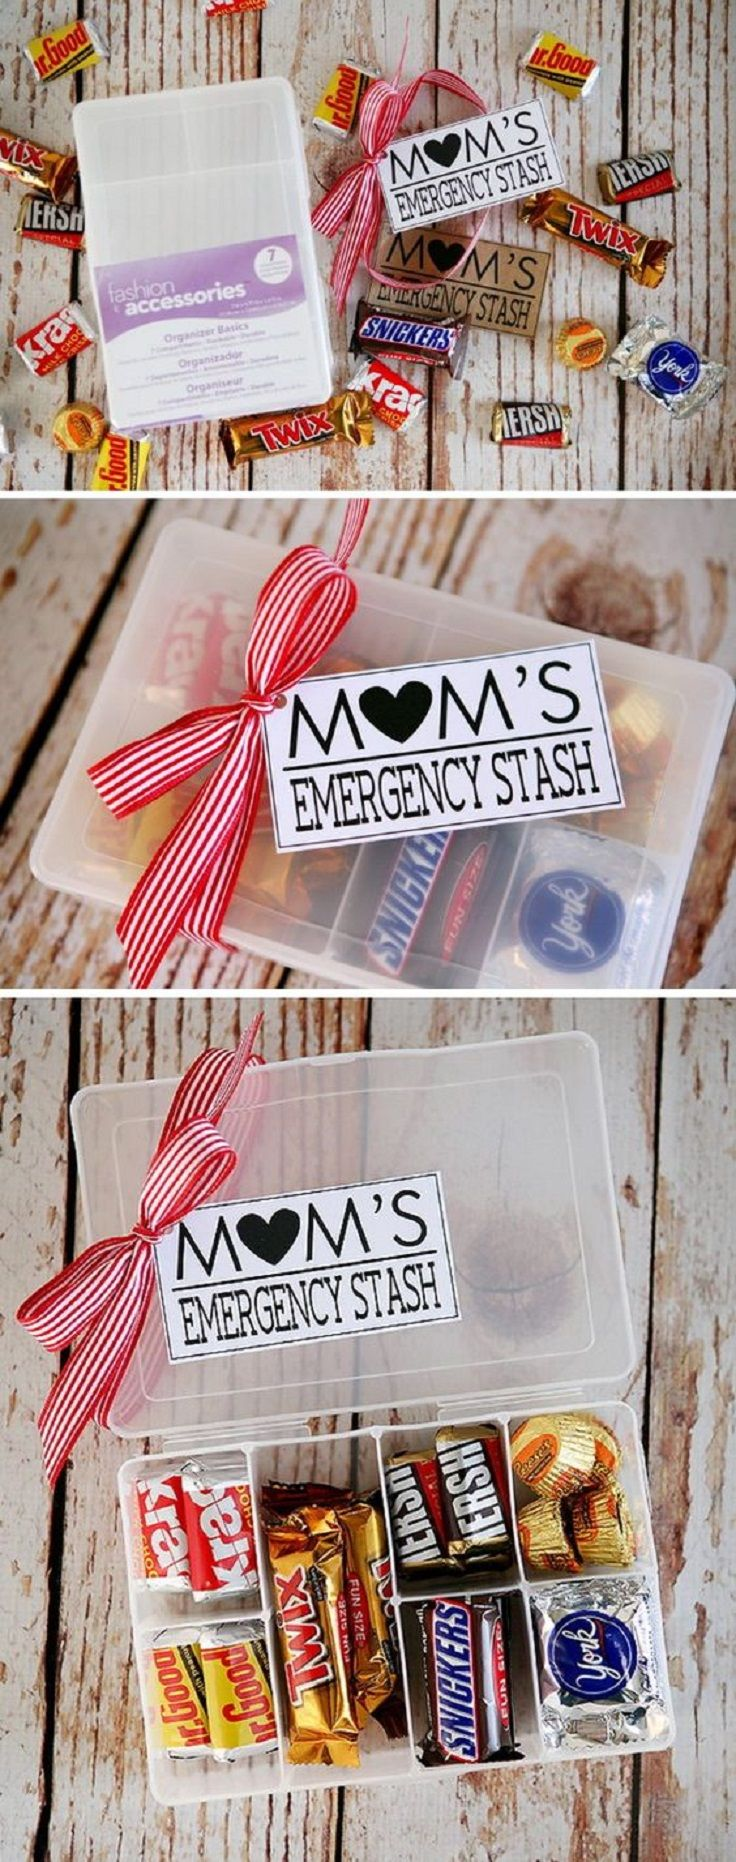 Mom's Emergency Stash - 16 Caring DIY Mother's Day Gifts To Celebrate Mom on Her Special Day #mothersday #mothersdaygift #giftideas #diygifts #diy #crafts #gift